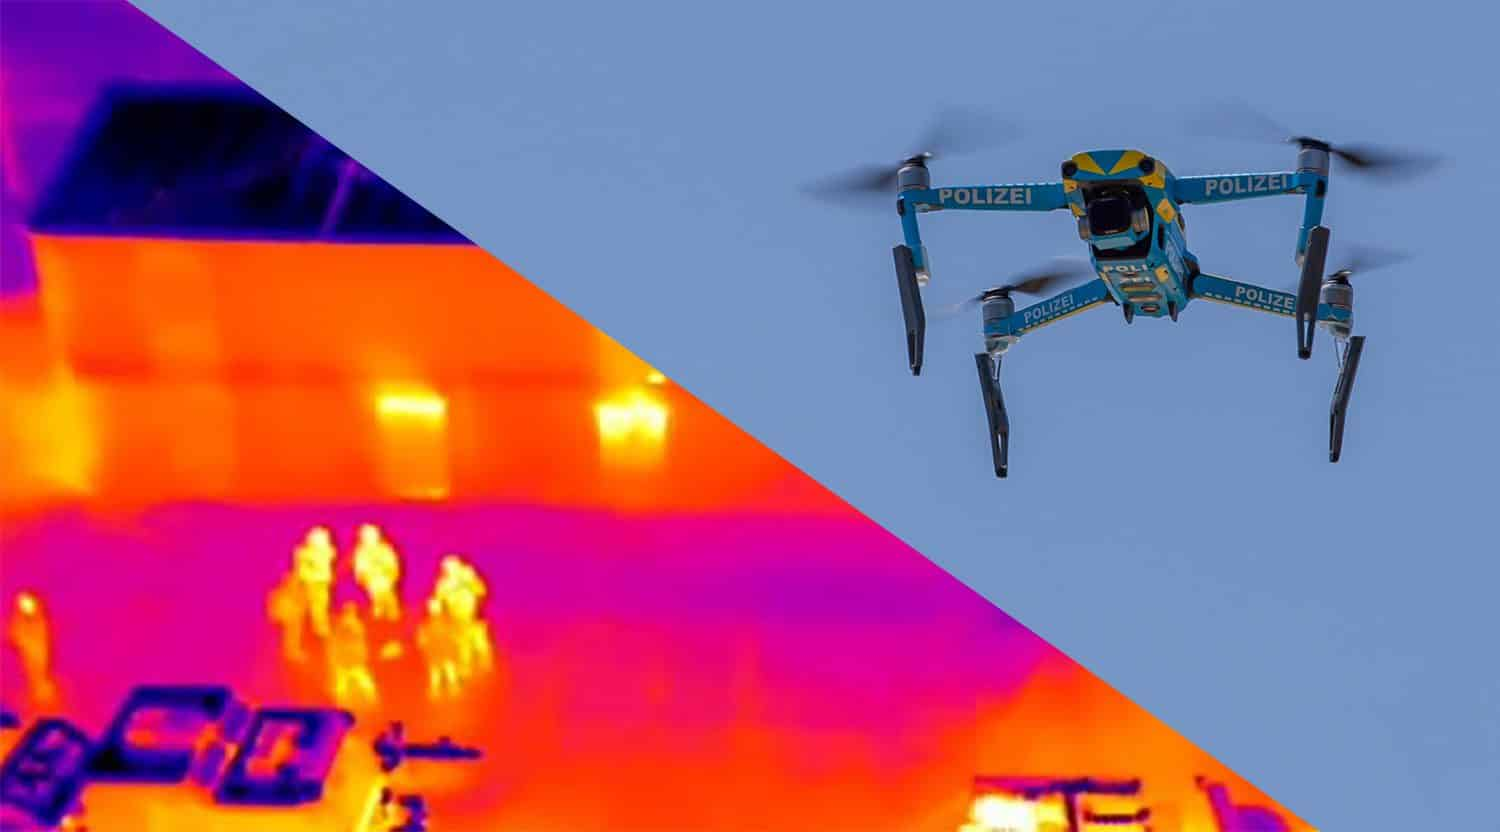 Increasing criticism of surveillance by police drones; Belgium starts privacy research